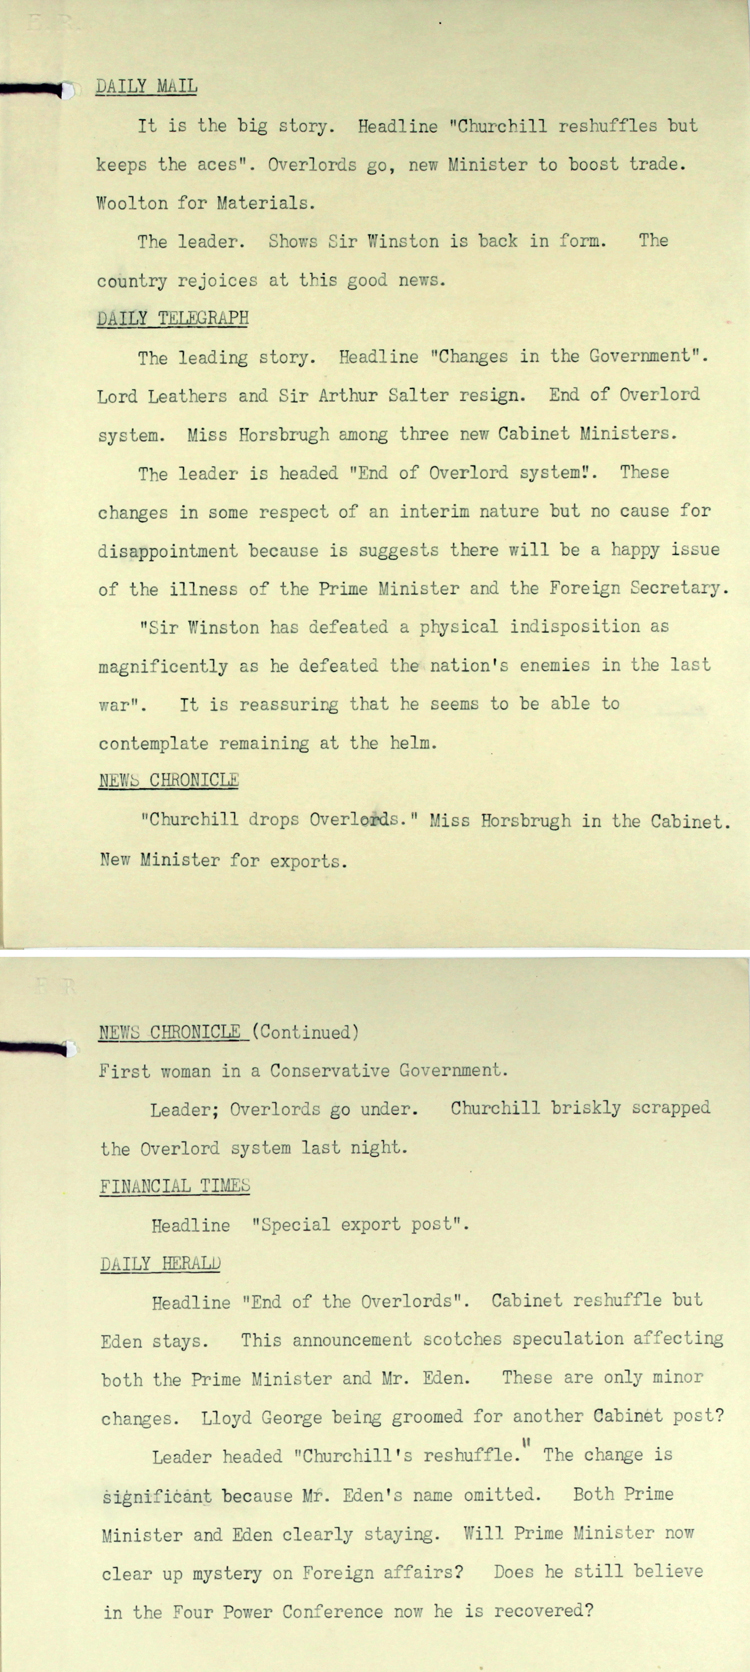 Extract from a press summary, September 1953 on Prime Minister Winston Churchill's Cabinet reshuffle (PREM 5/225)